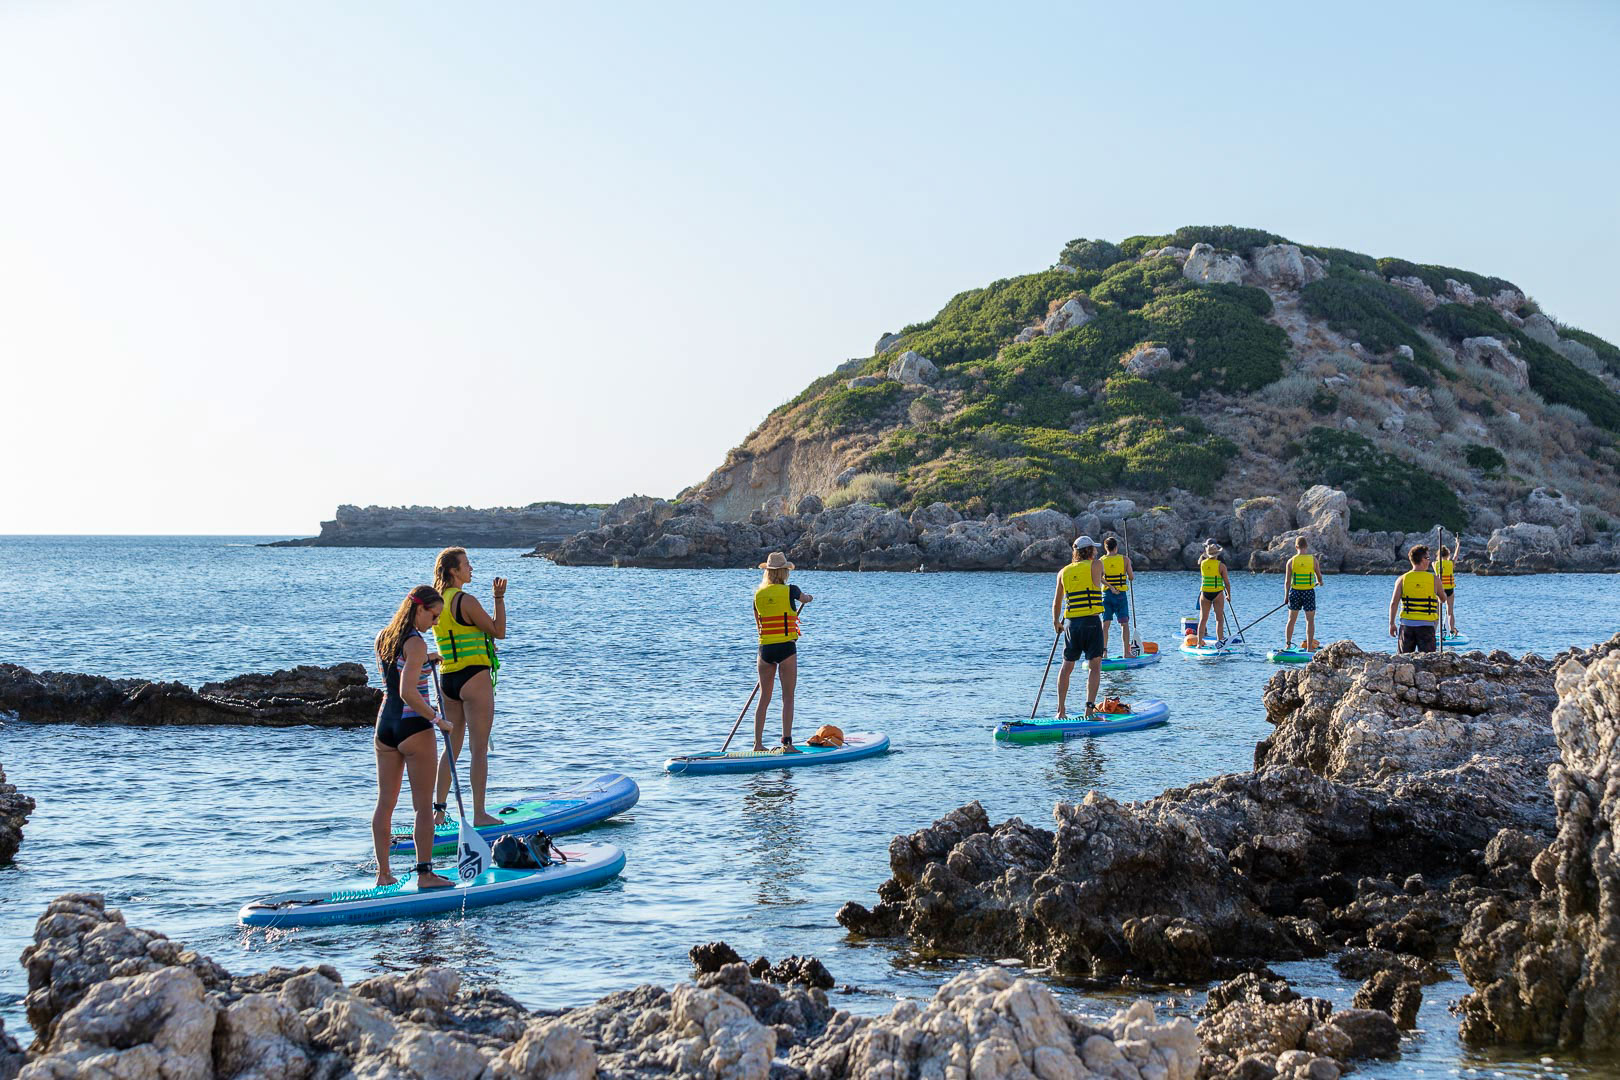 Stand Up Paddle boarding in Stegna